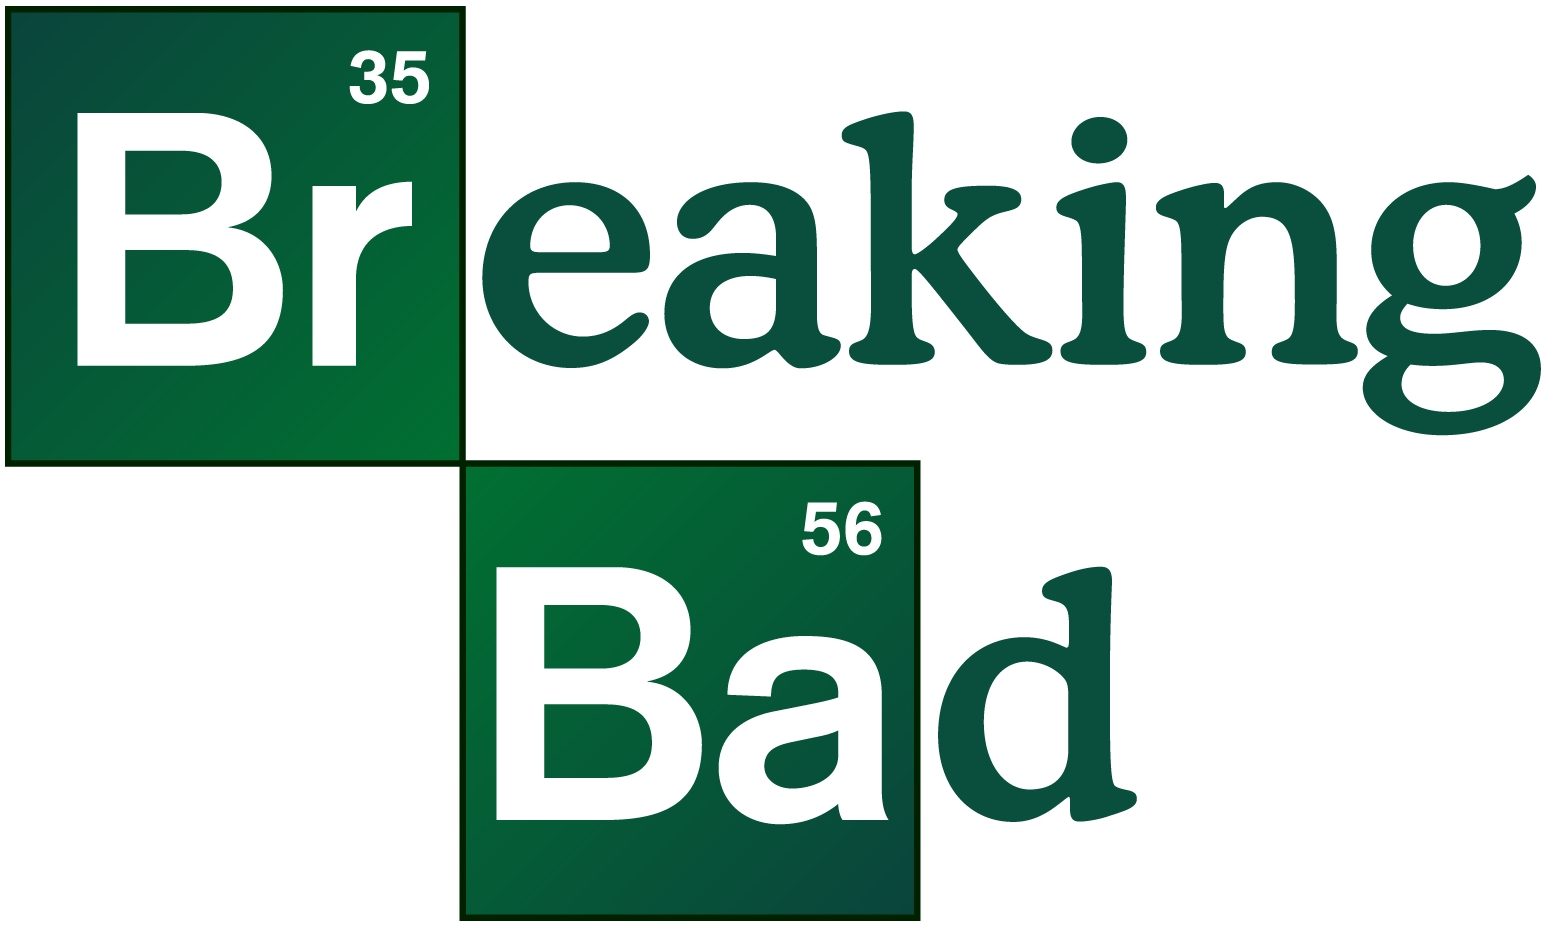 Breaking-bad-logo1 Hdclipartall.com